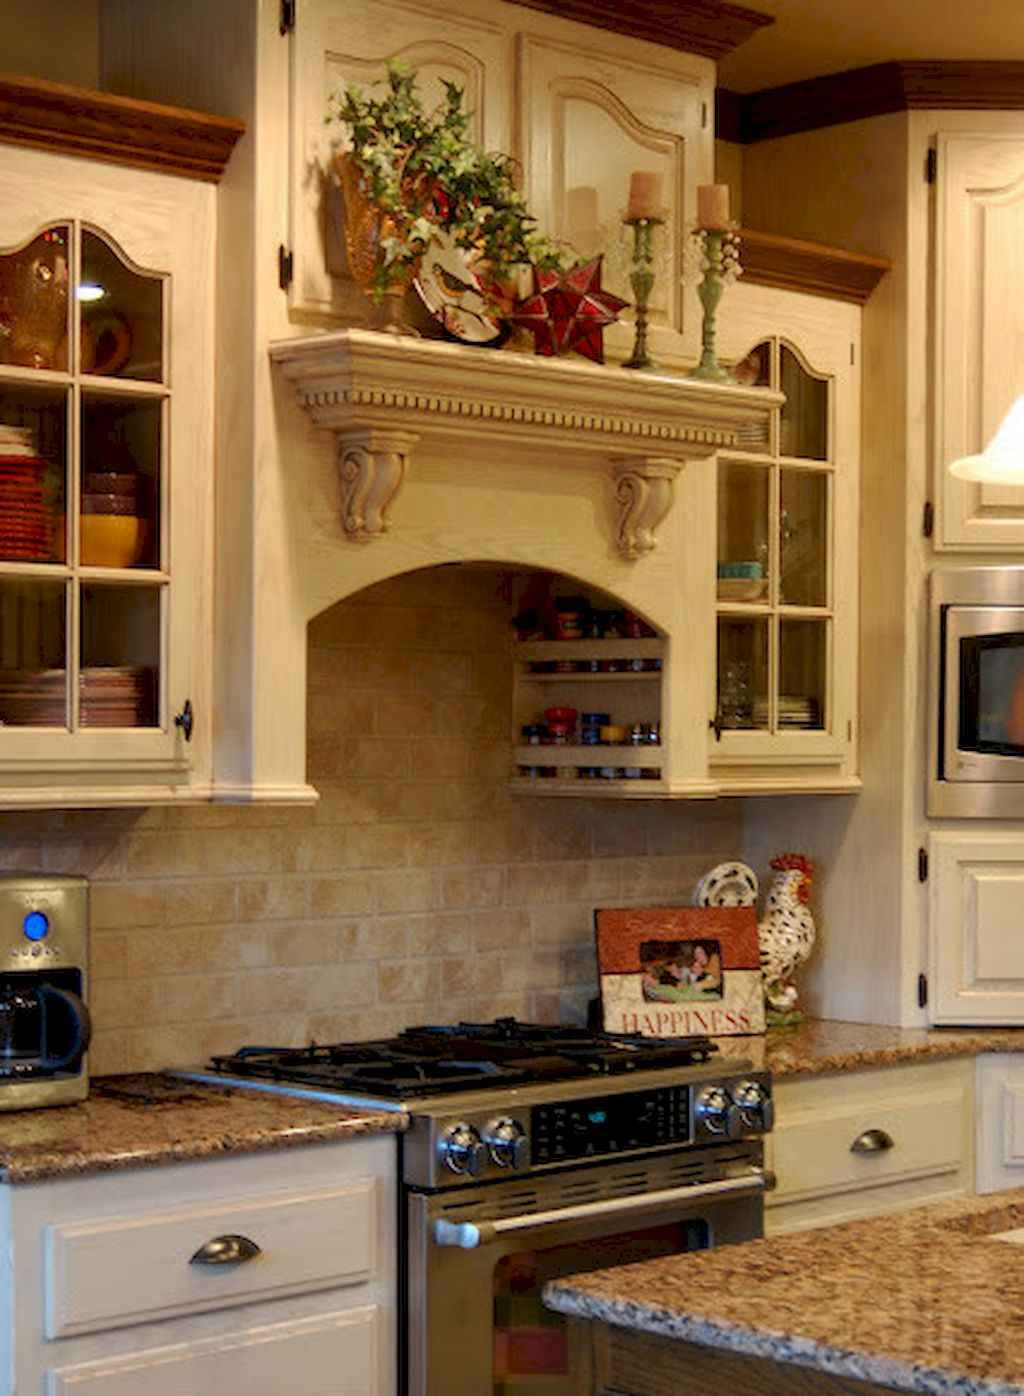 Incredible french country kitchen design ideas (31)